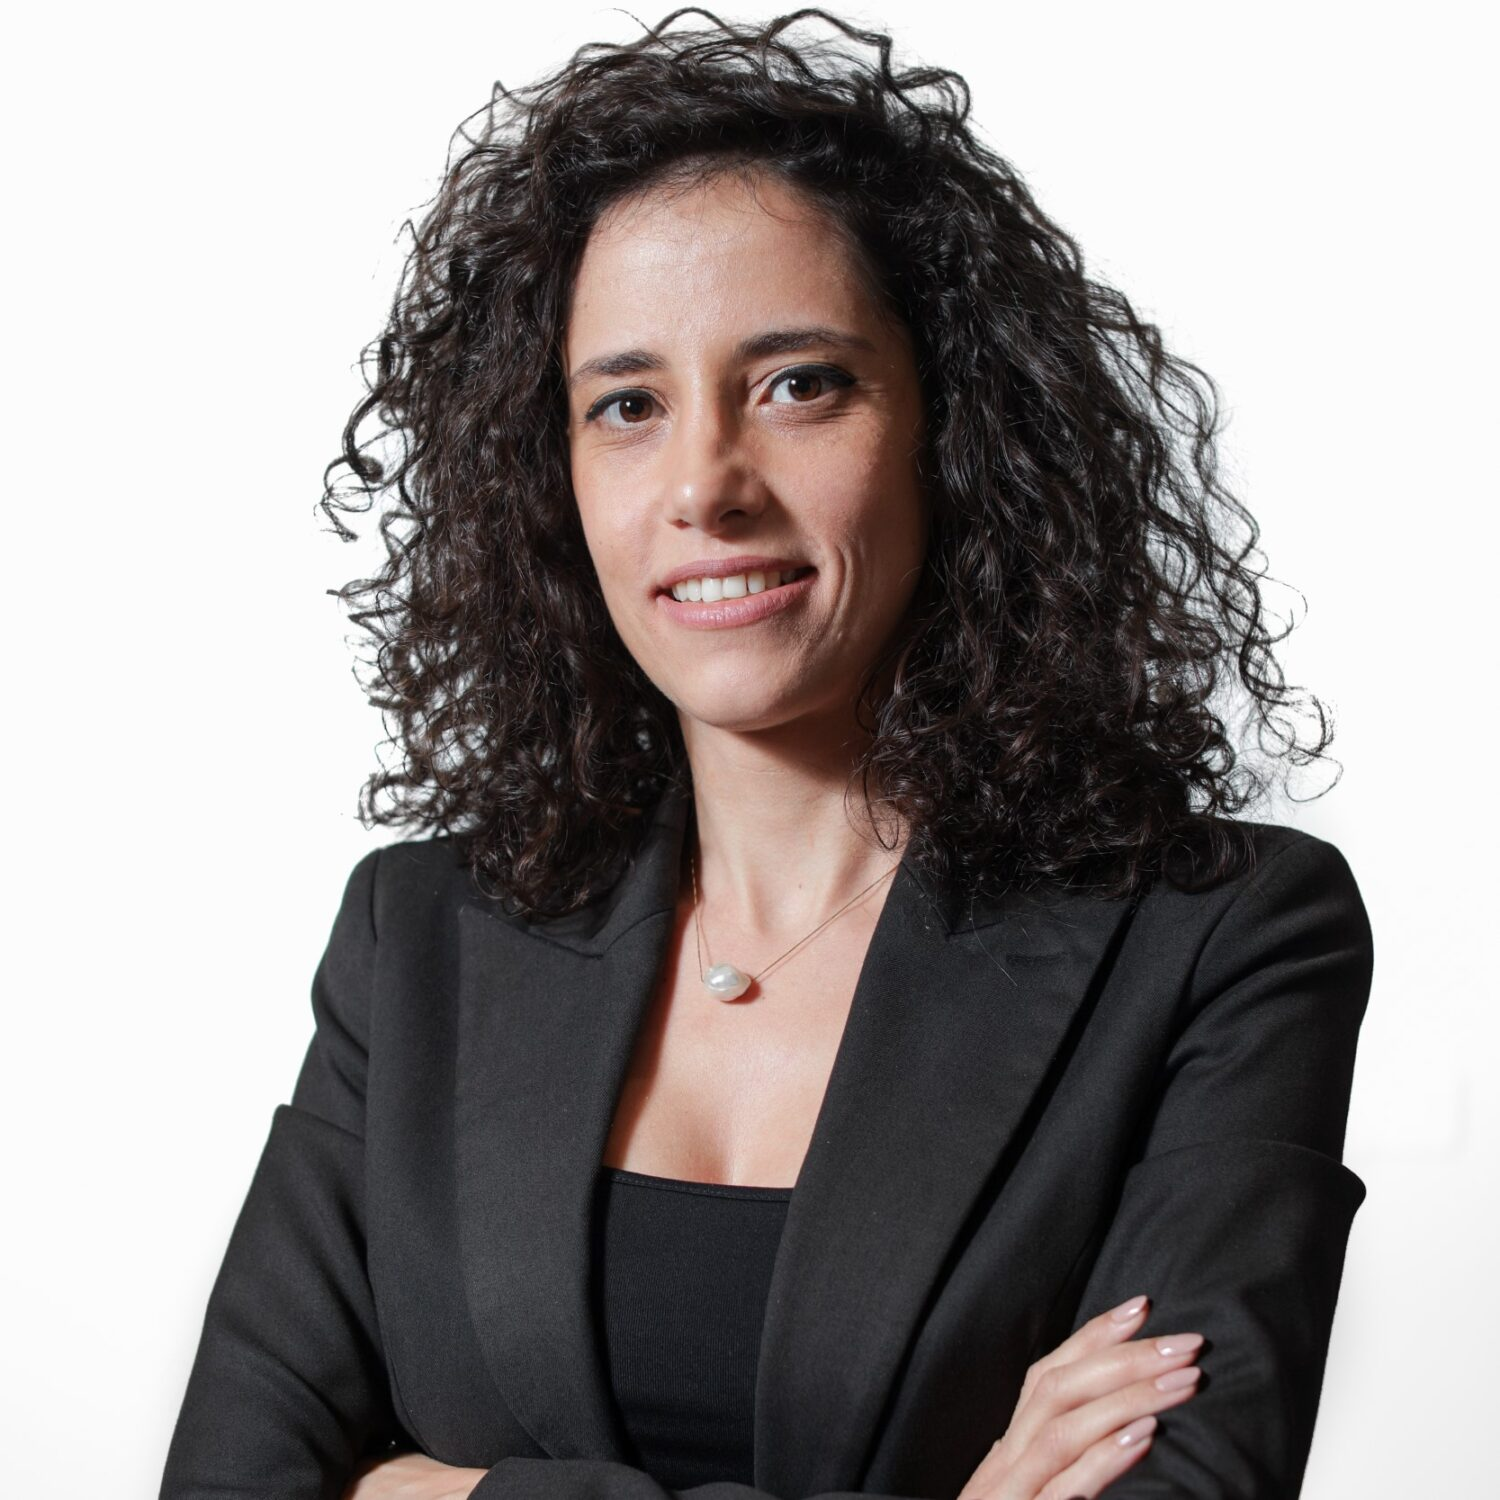 Melki-Law-Firm-Lawyer-Lebanon-Corporate-Beirut-Mergers-and-acquisitions-Banking-law-publications